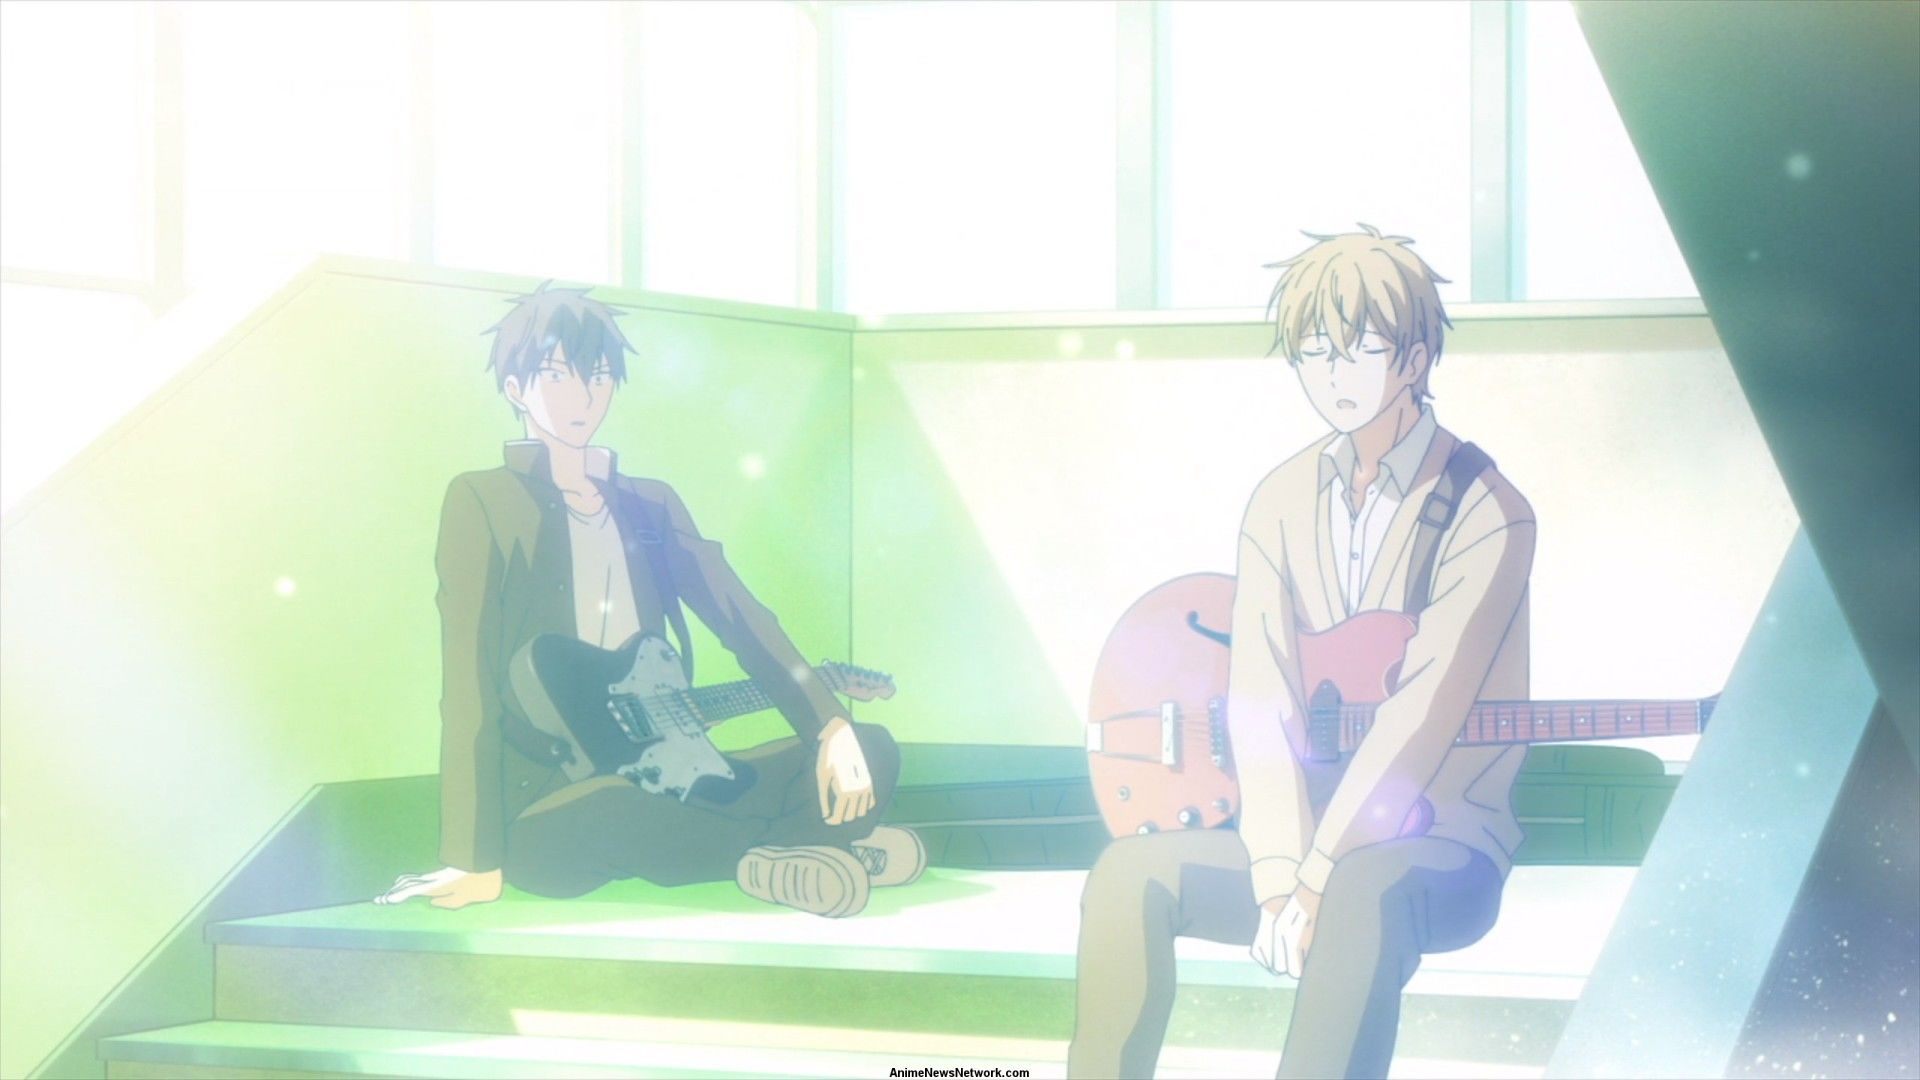 Episodes 1 2 Given Anime News Network